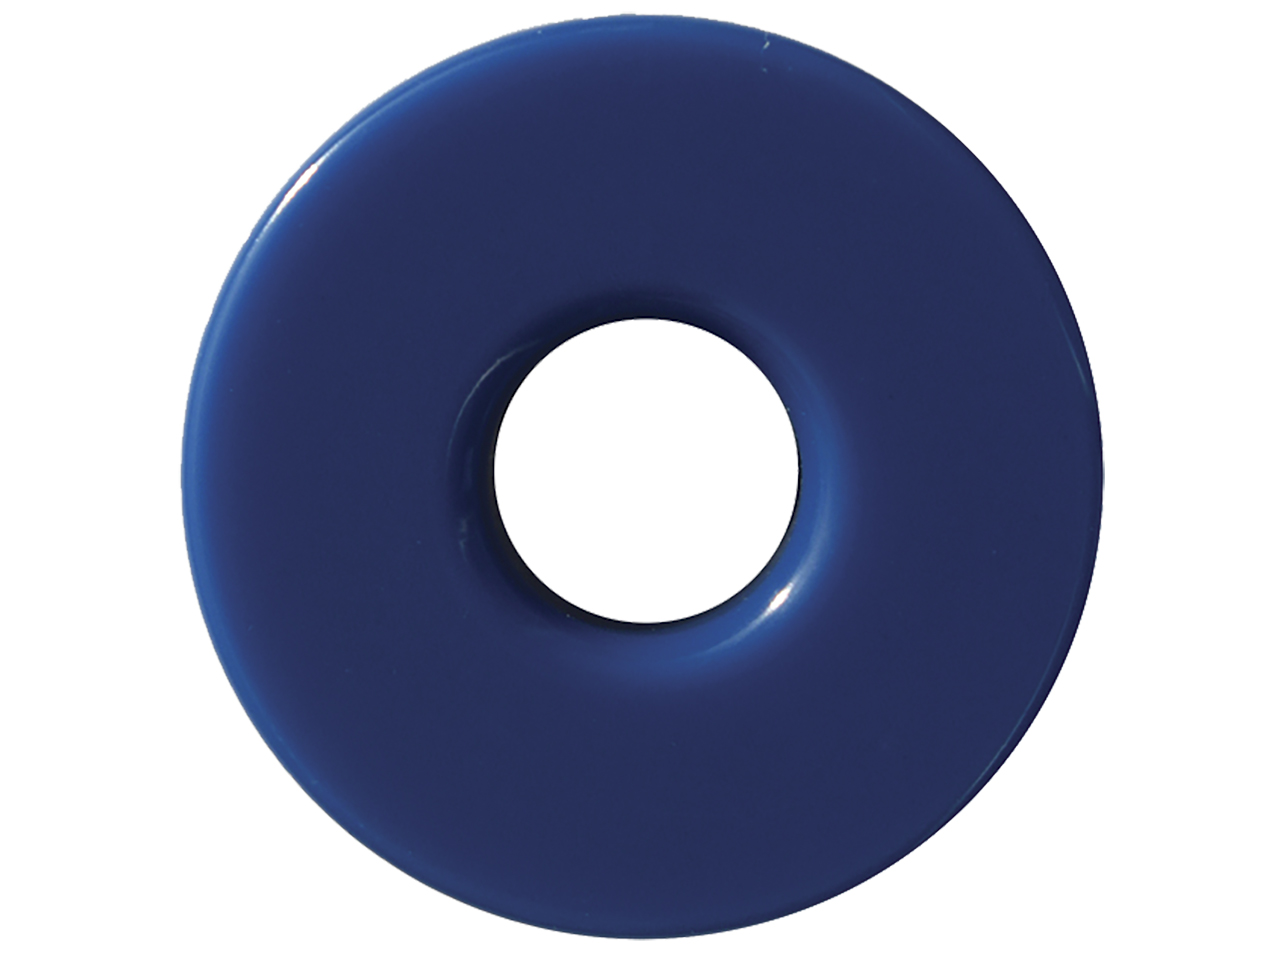 """Wehrs Sleeve Style 2-1/8"""" O.D. Puck (Blue - 70 Durometer)"""